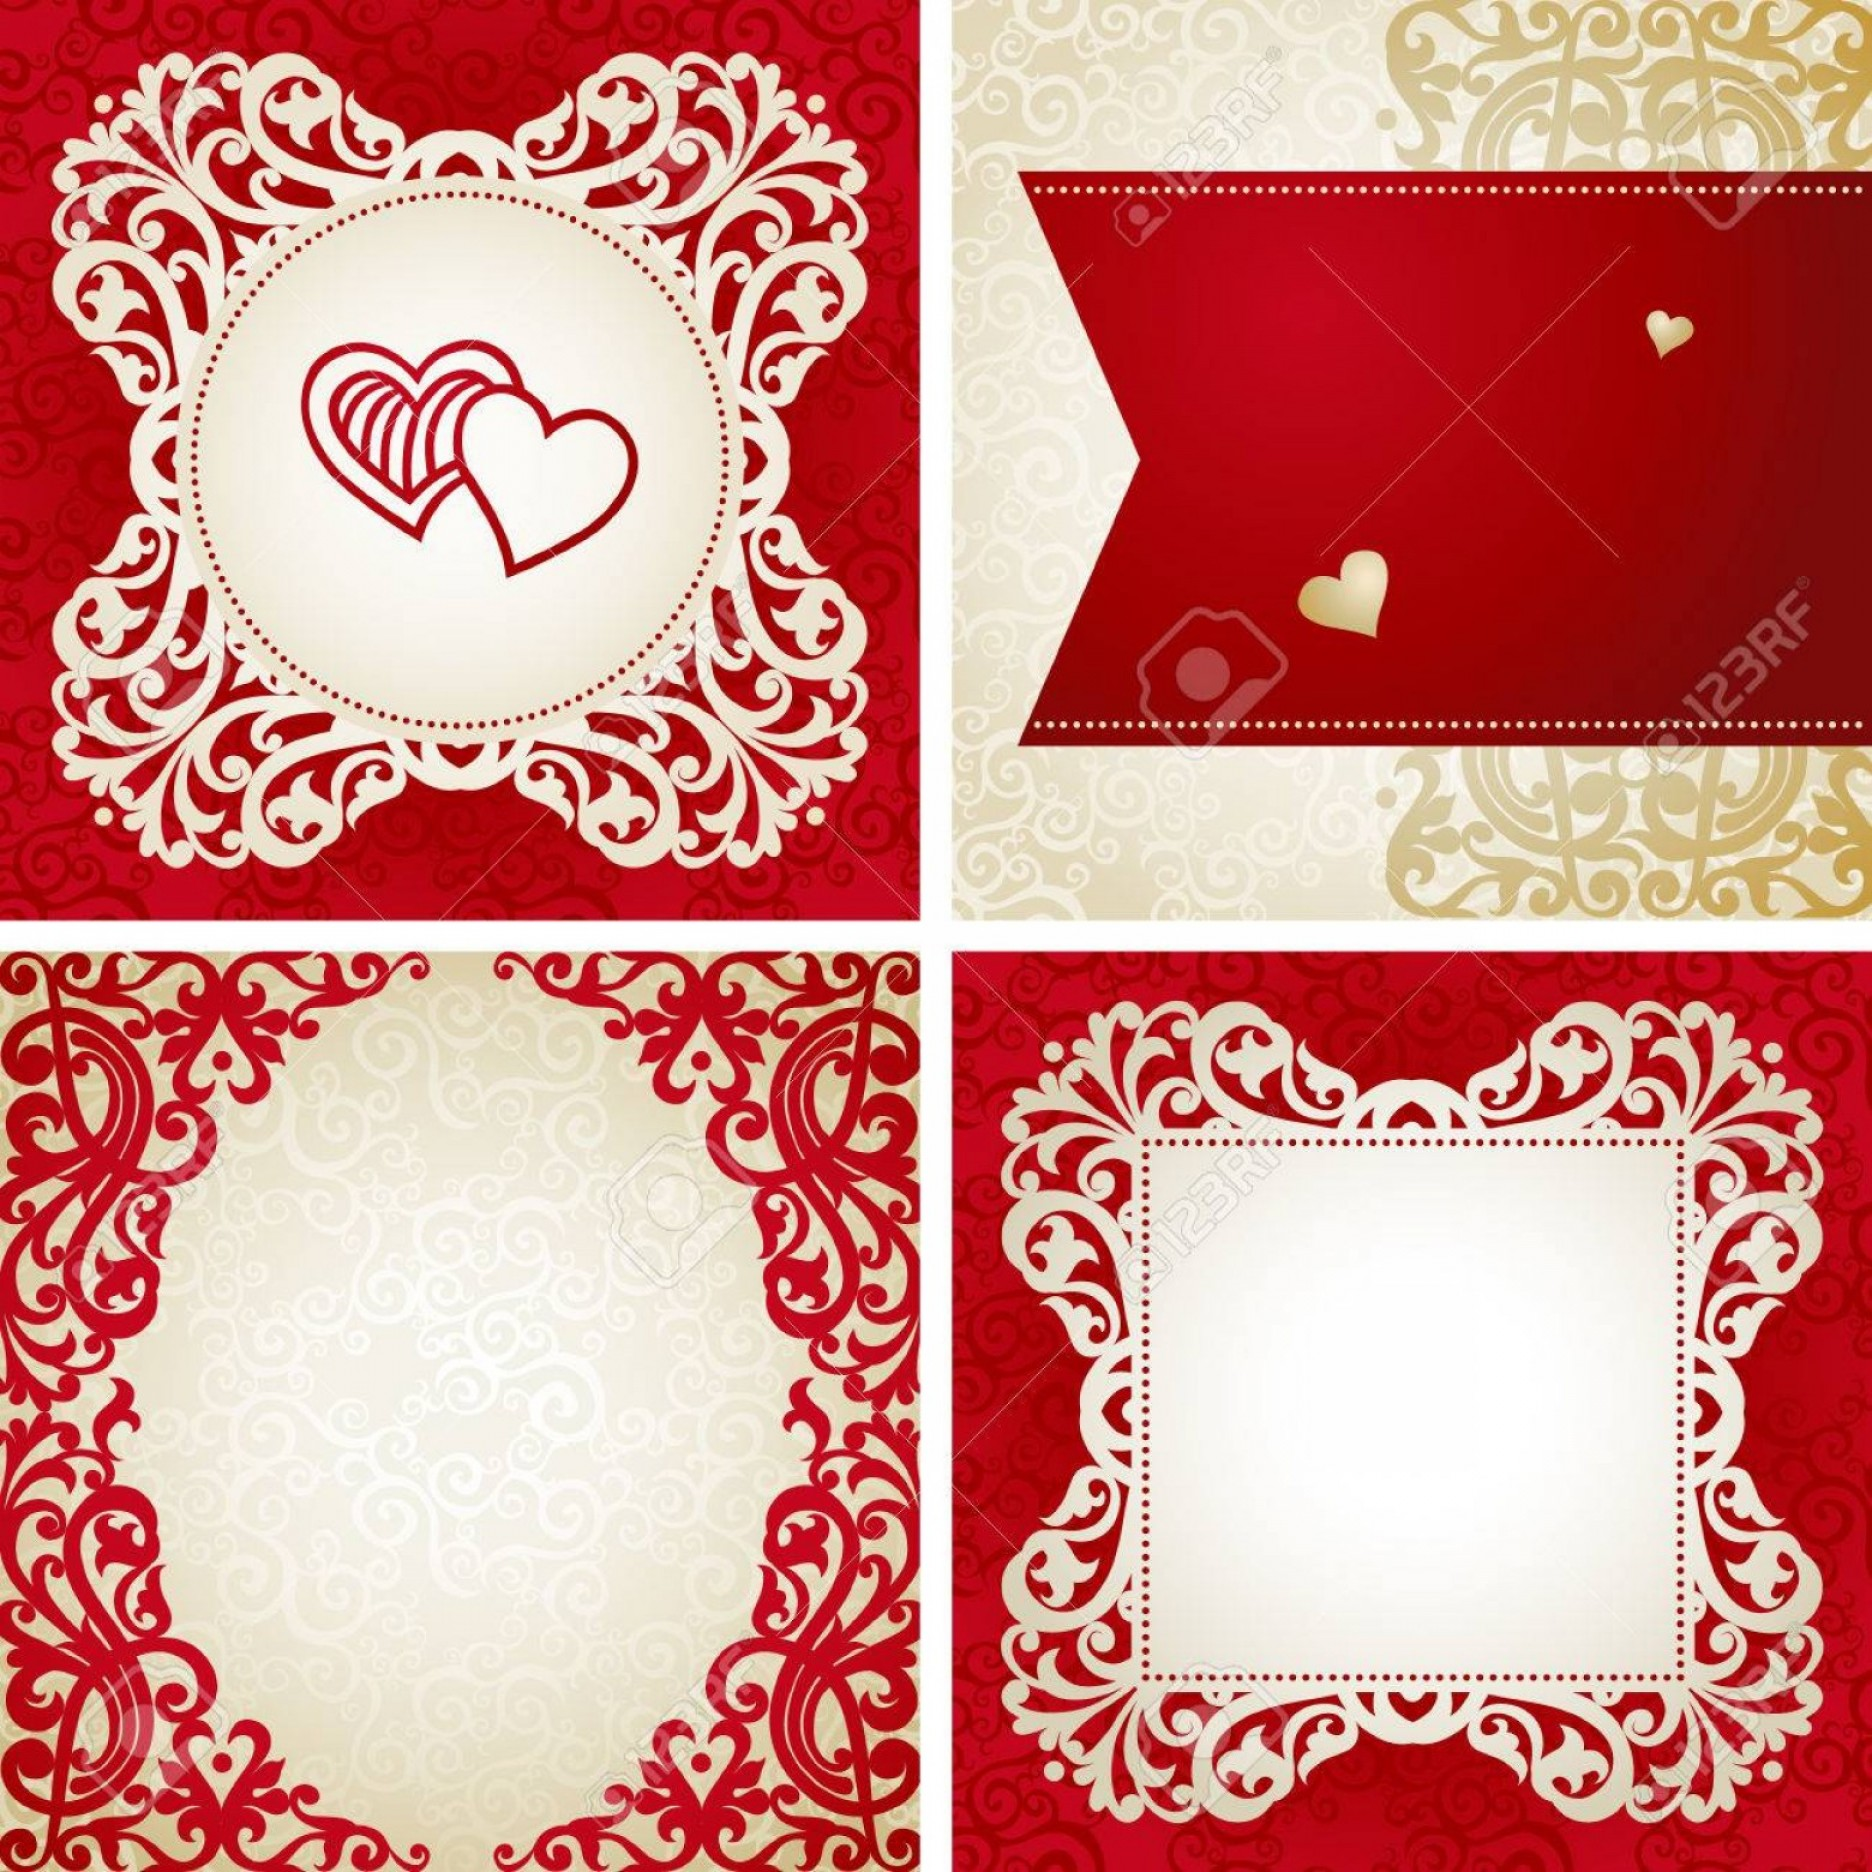 Victorian Motif Vector: Photostock Vector Vintage Greeting Cards With Swirls And Floral Motifs In Victorian Style Template Frame Design For Re